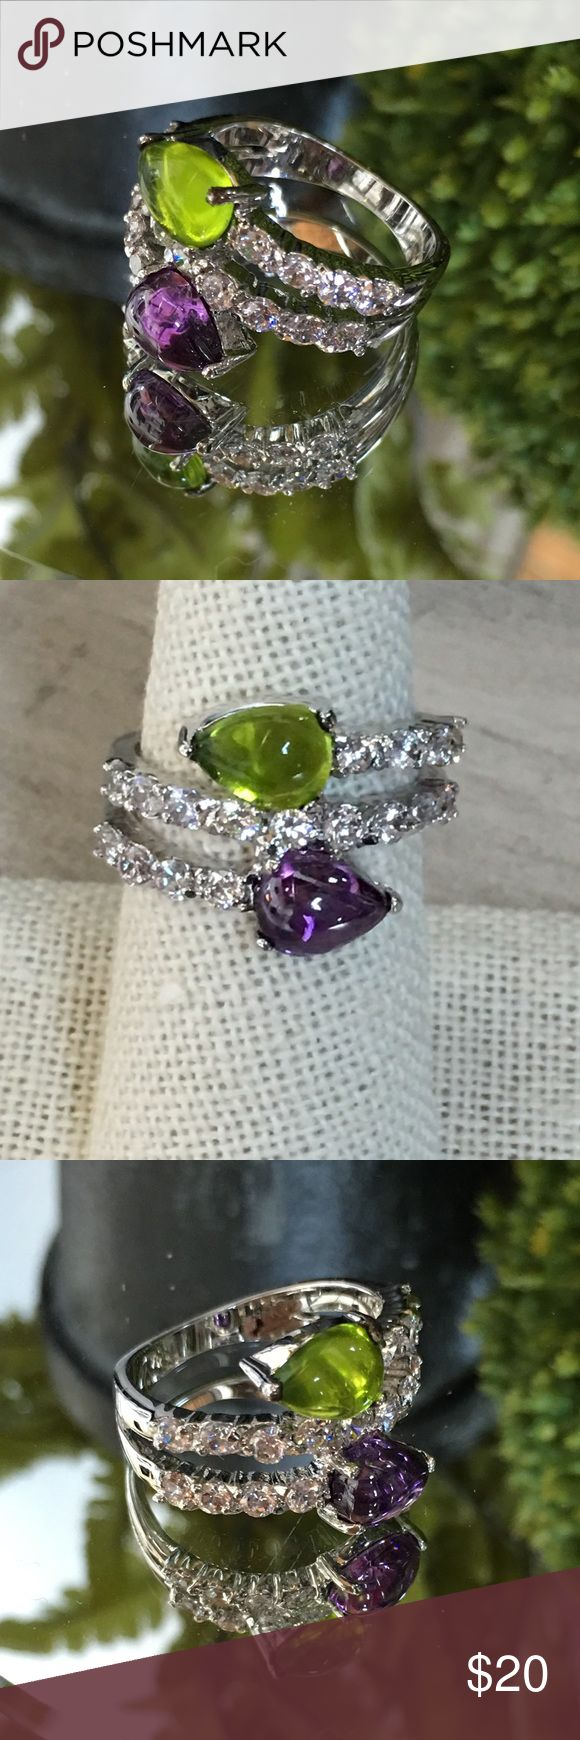 "Multi-Stone Pear Cabs & Diamond CZ Ring Gorgeous cabochons in Amethyst & Peridot CZ's  accented with ""diamond"" CZ's.  Historically cabochons of amethyst & peridot's with clarity  were highly prized & the diamond accent stones were less valued! This style is a great conversation piece with plenty of sparkle.  4.05 tcw                                                                       10k white gold filled.                                                  Sizes:  7,8 Simply Irresistible…"